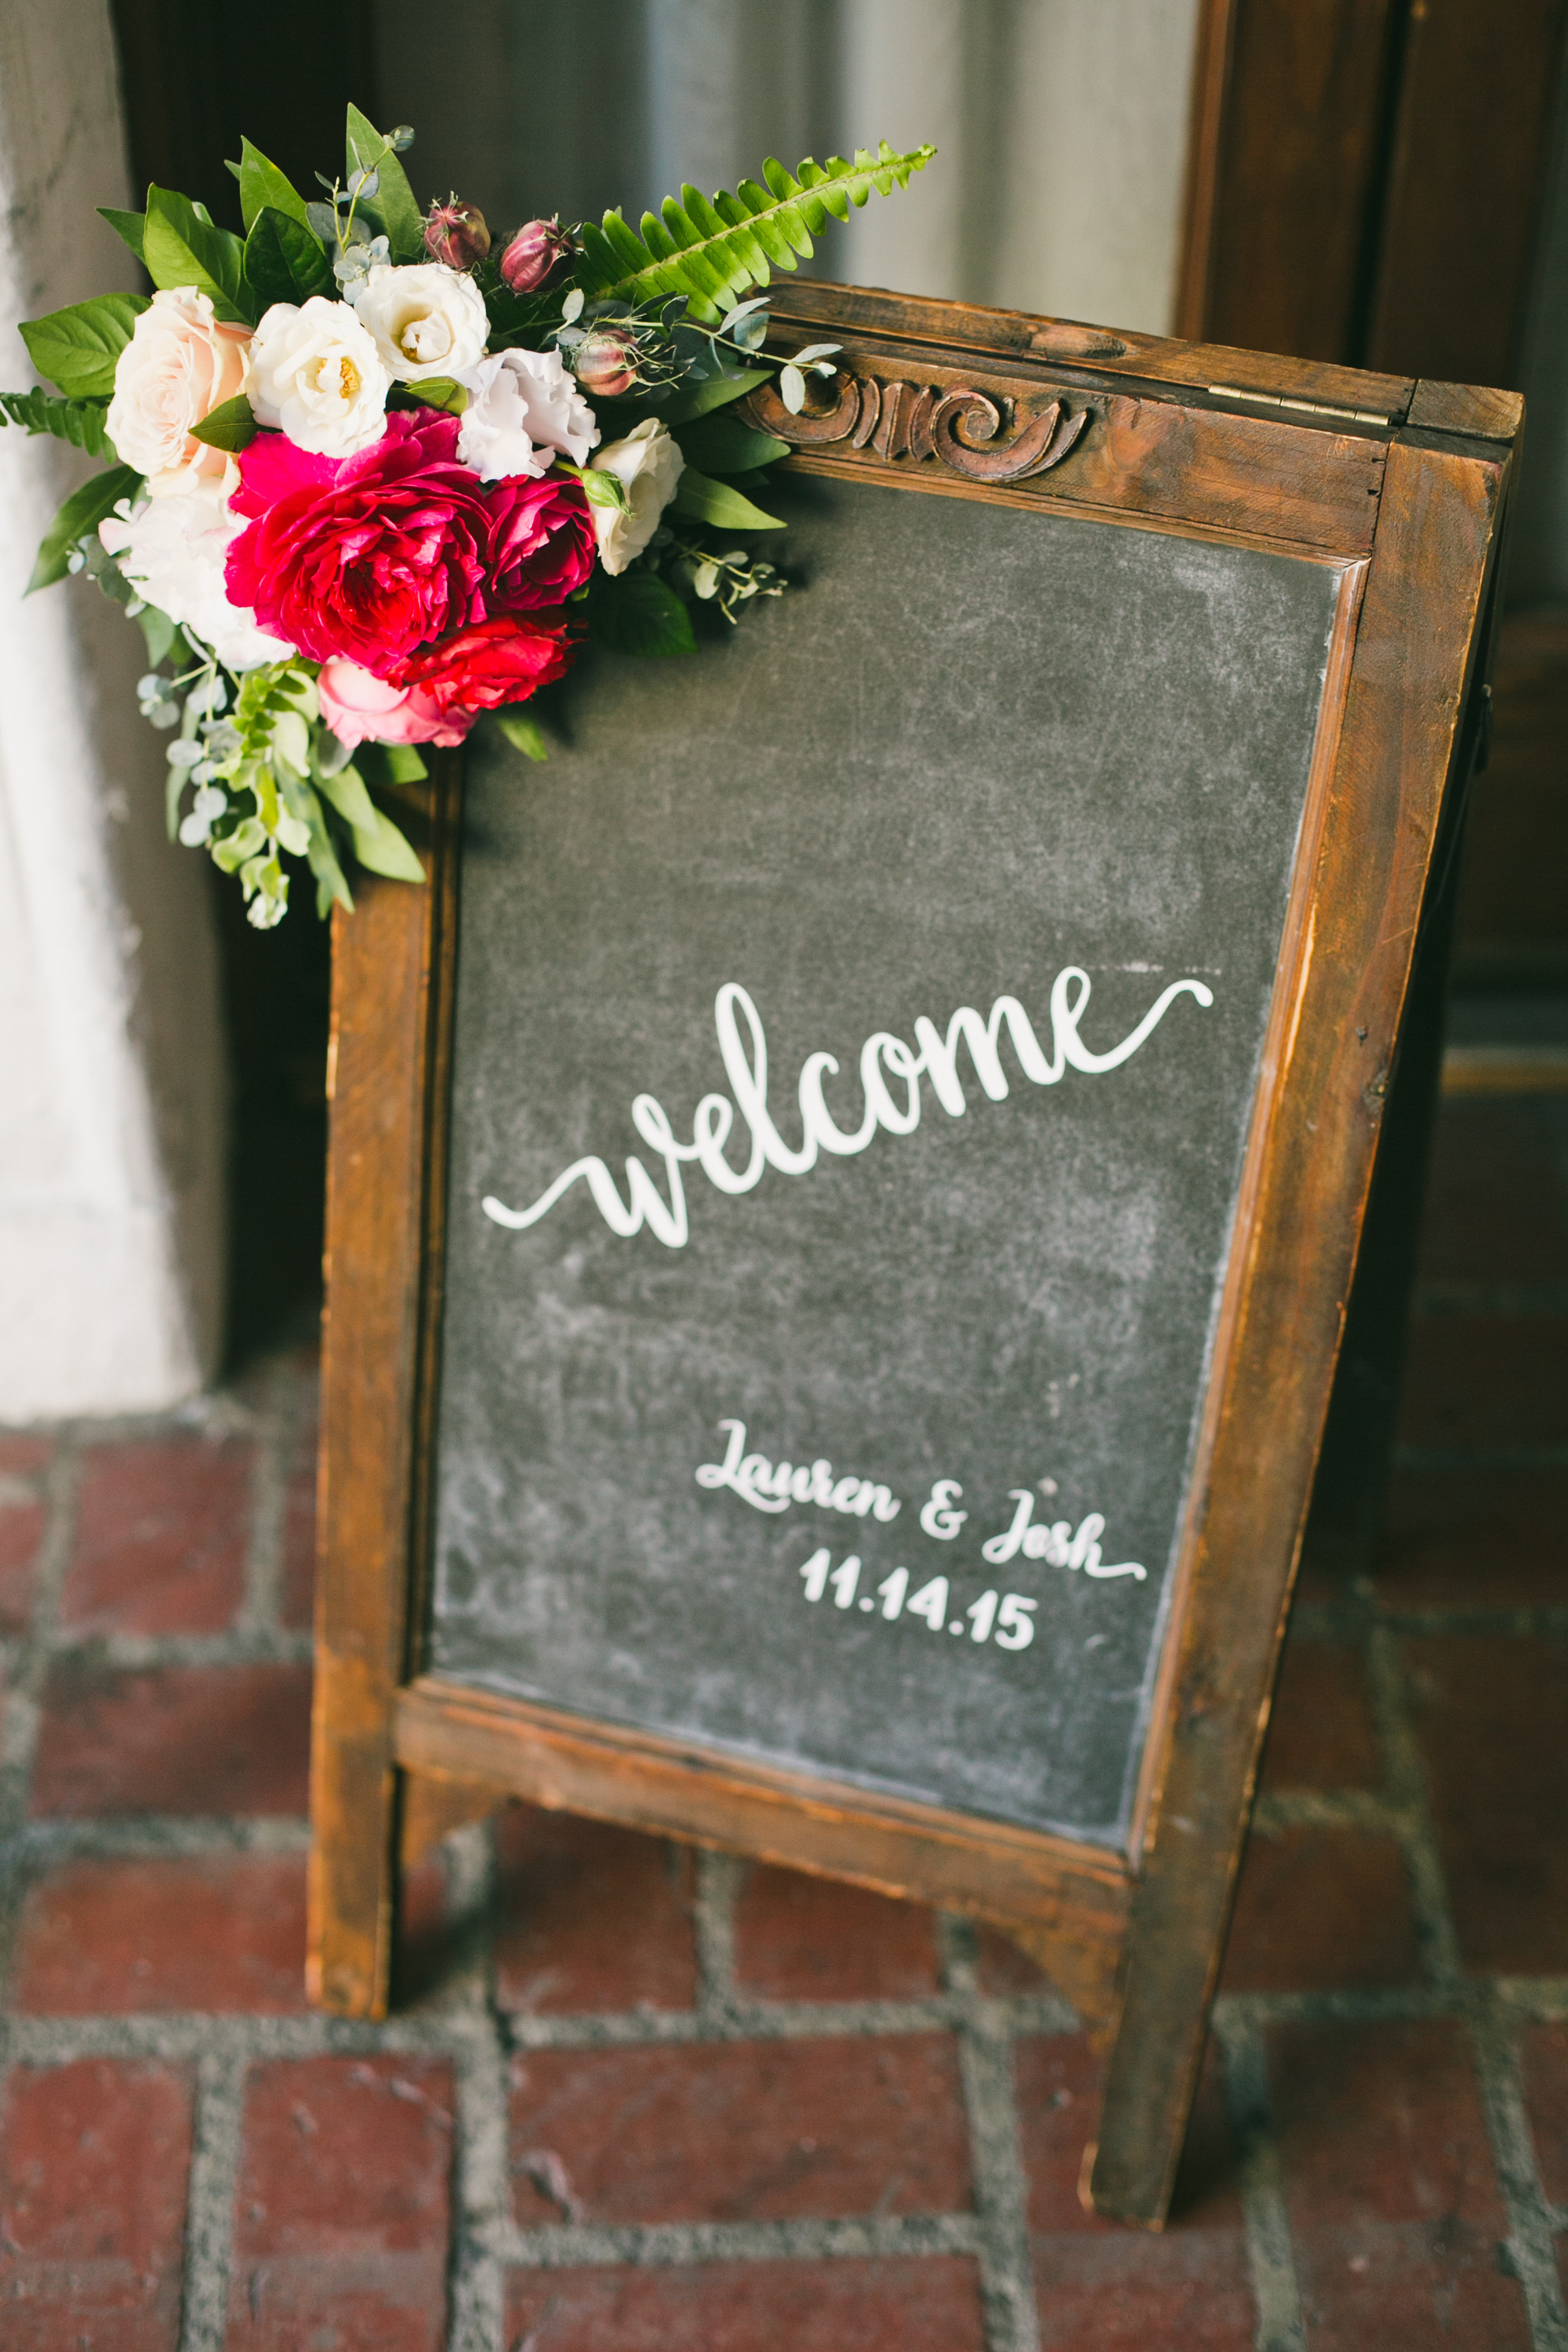 051 welcome sign.JPG